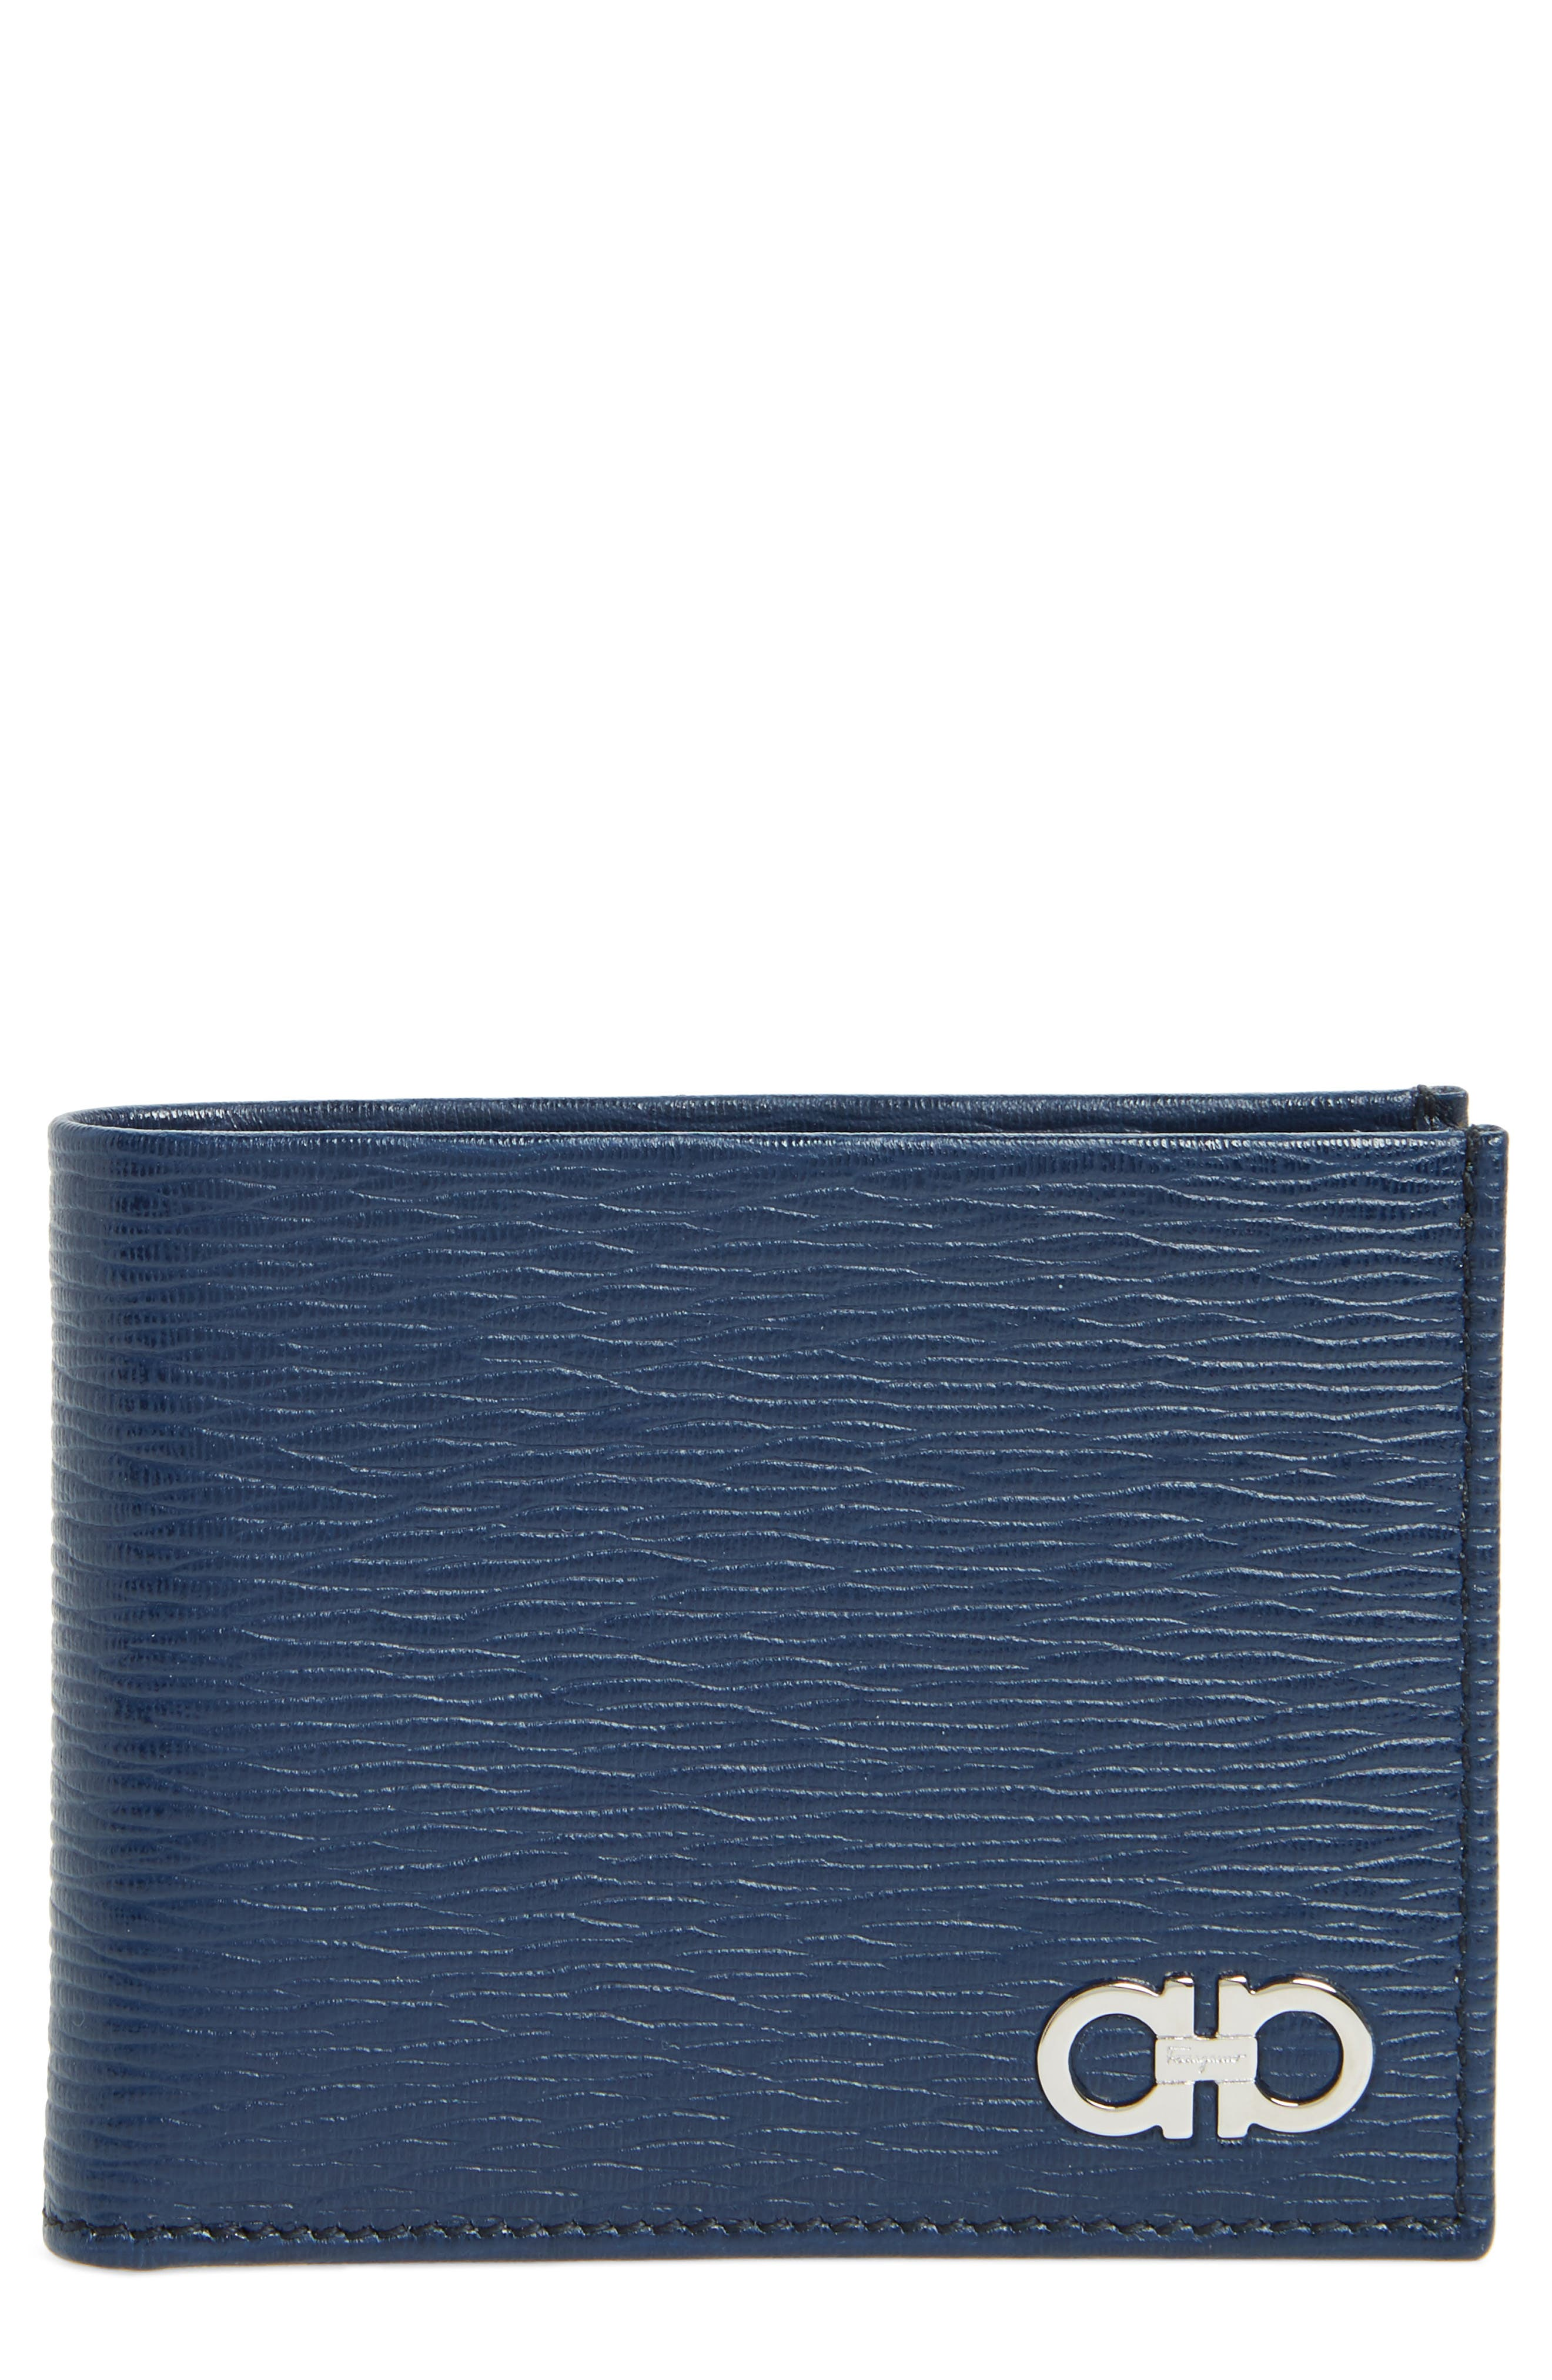 Revival Bifold Leather Wallet,                         Main,                         color, BLUE